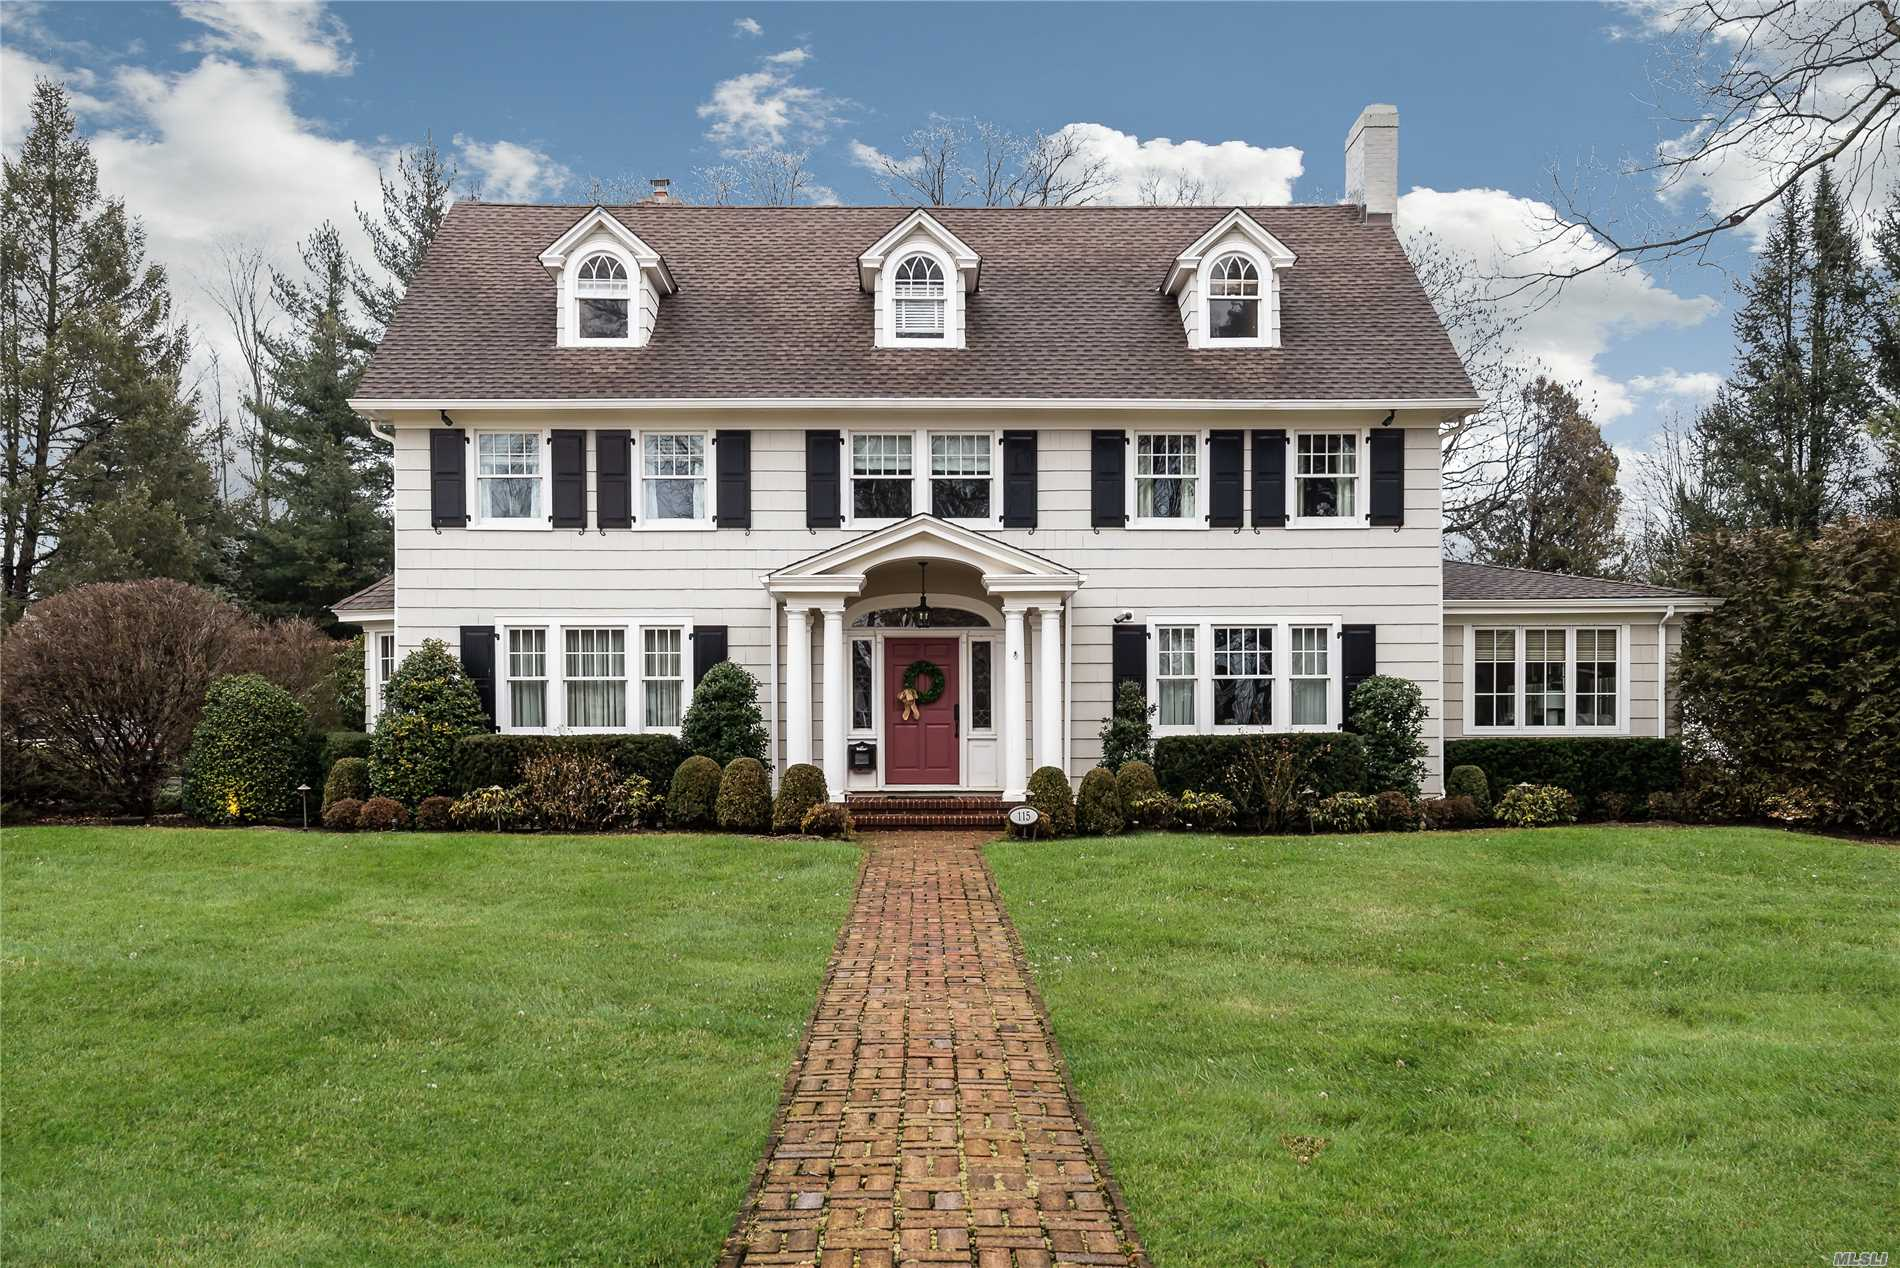 Magnificent Colonial With Every Amenity In Place. Home Has Been Completely Renovated And Includes 7200 Sq.Ft. Of Living Space Including Finished Basement. 1.3 Acres. Stunning Entryway W/Grand Staircase, Leaded Glass Windows; Exquisite Custom Millwork; High End Chef's Kitchen W/Butler's Pantry And Lg. Familyrm/Gas Fp; New Baths, Roof; Property Also Includes Half Sport Court Basketball Court, Guest Cottage With Br, Lr, Updated Kit & Full Bath, And New Heat. State-Of-The-Art Alarm/Security System